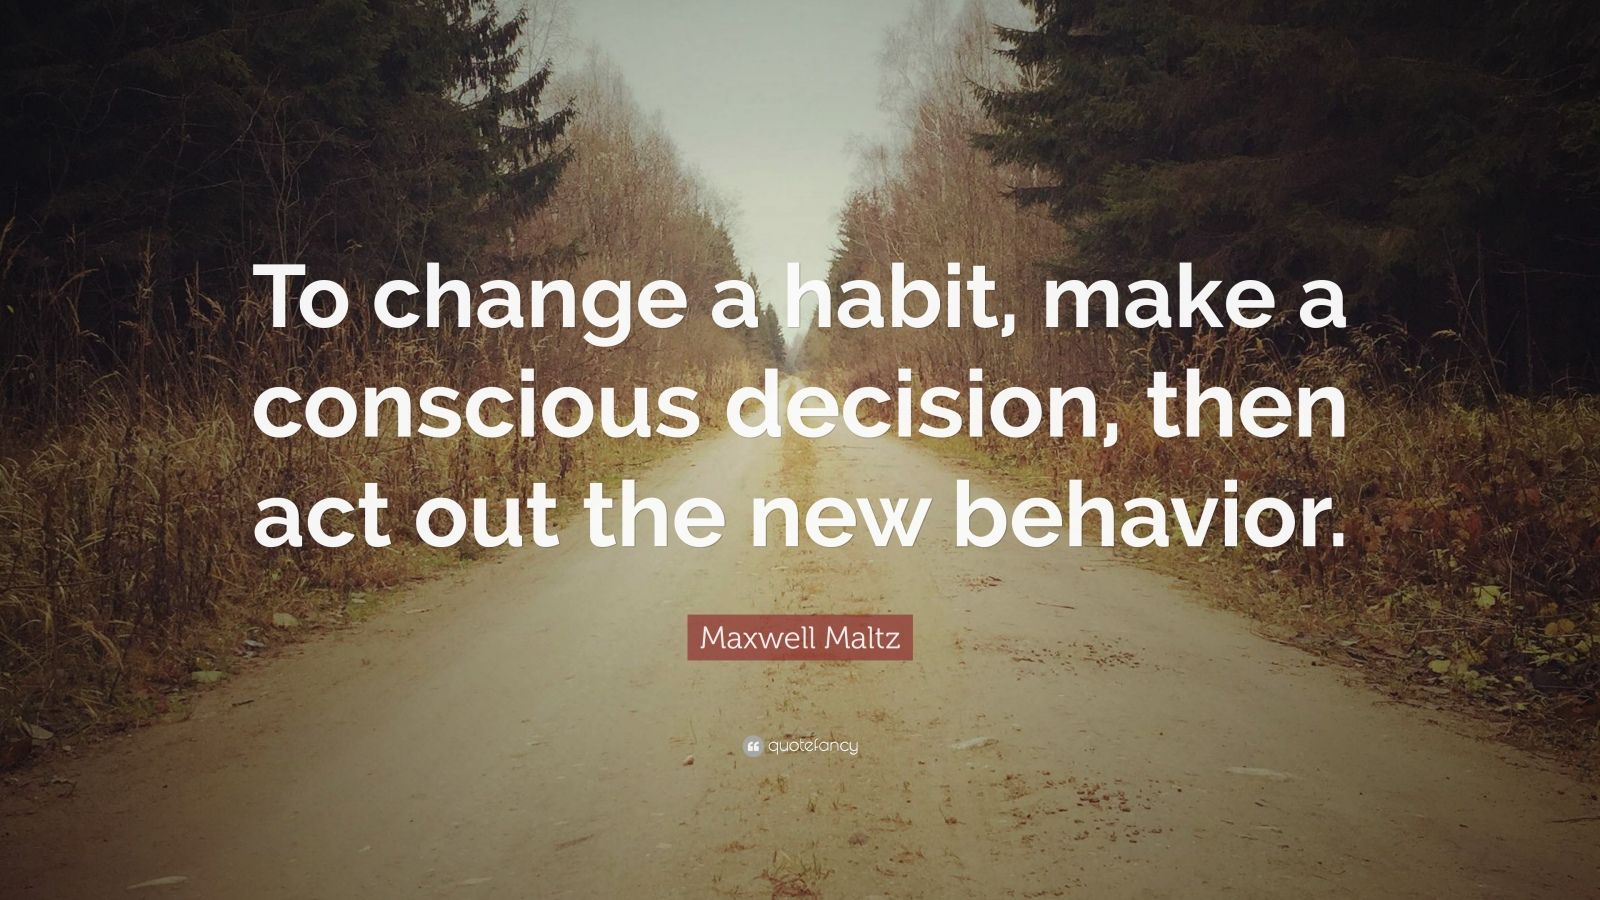 """Maxwell Maltz Quote: """"To change a habit, make a conscious decision, then act out the new behavior."""""""